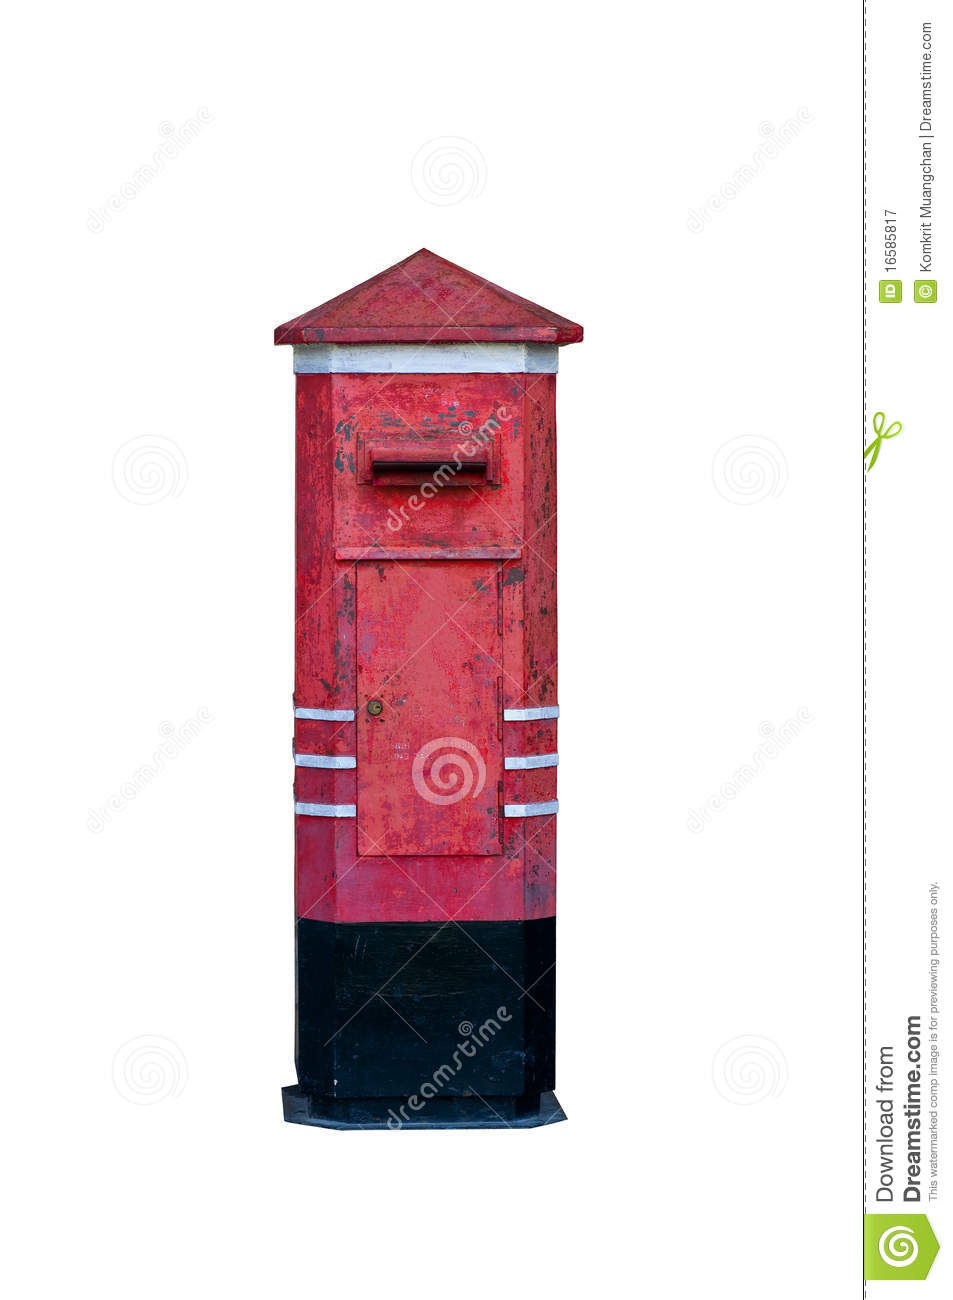 Postbox Royalty Free Stock Photography - Image: 16585817: dreamstime.com/royalty-free-stock-photography-postbox-image16585817